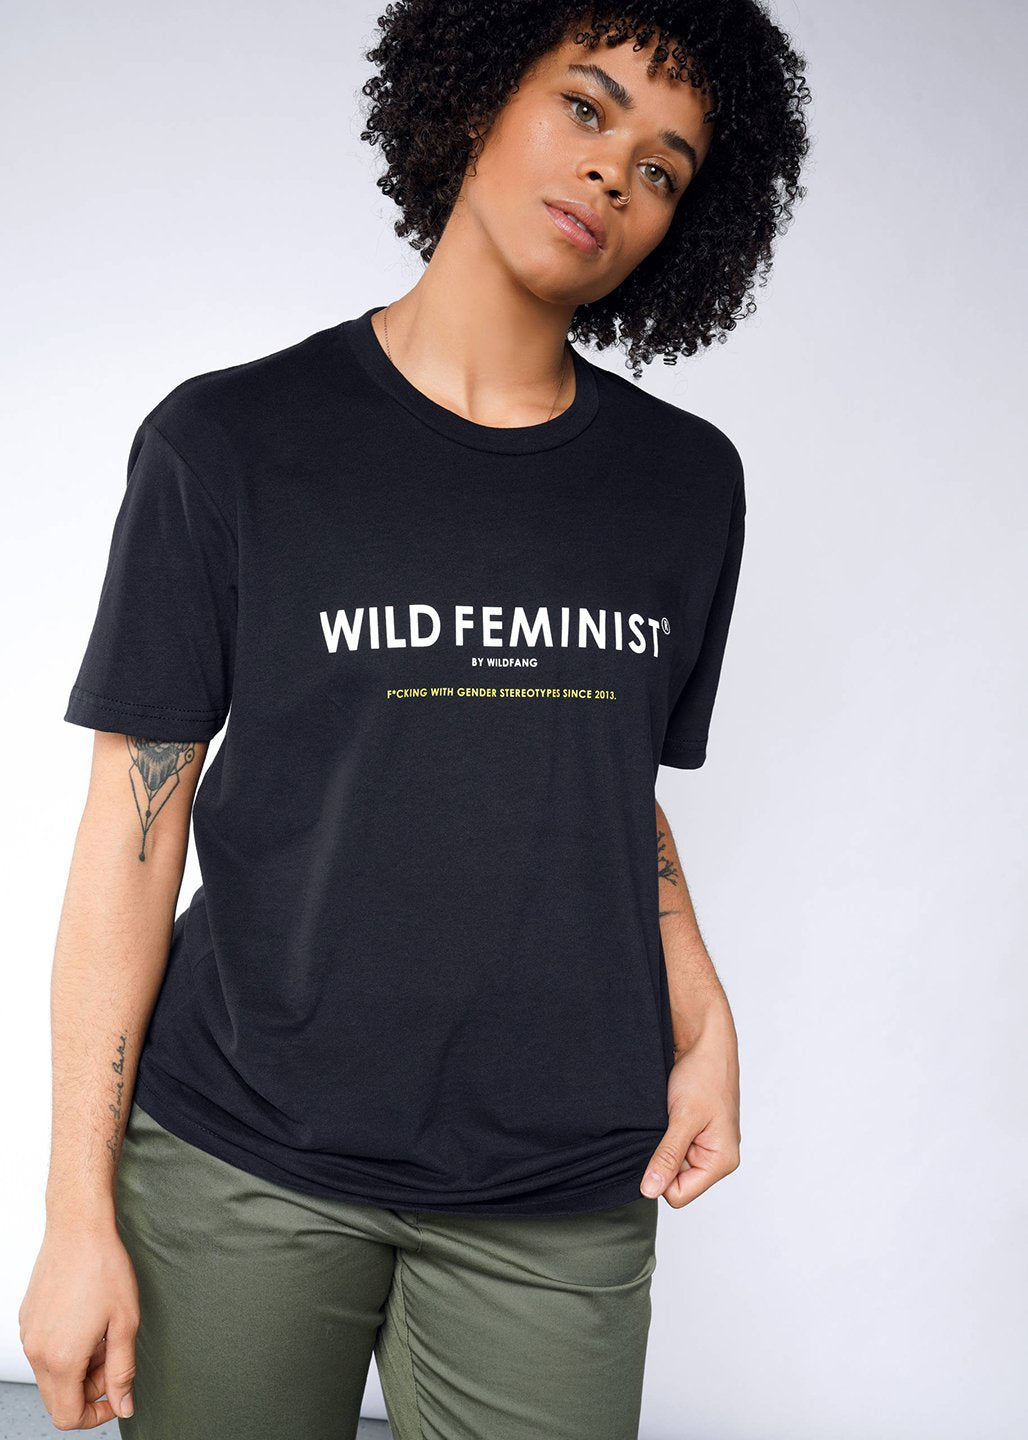 Image of model wearing Wild Feminist tee in gray with white text